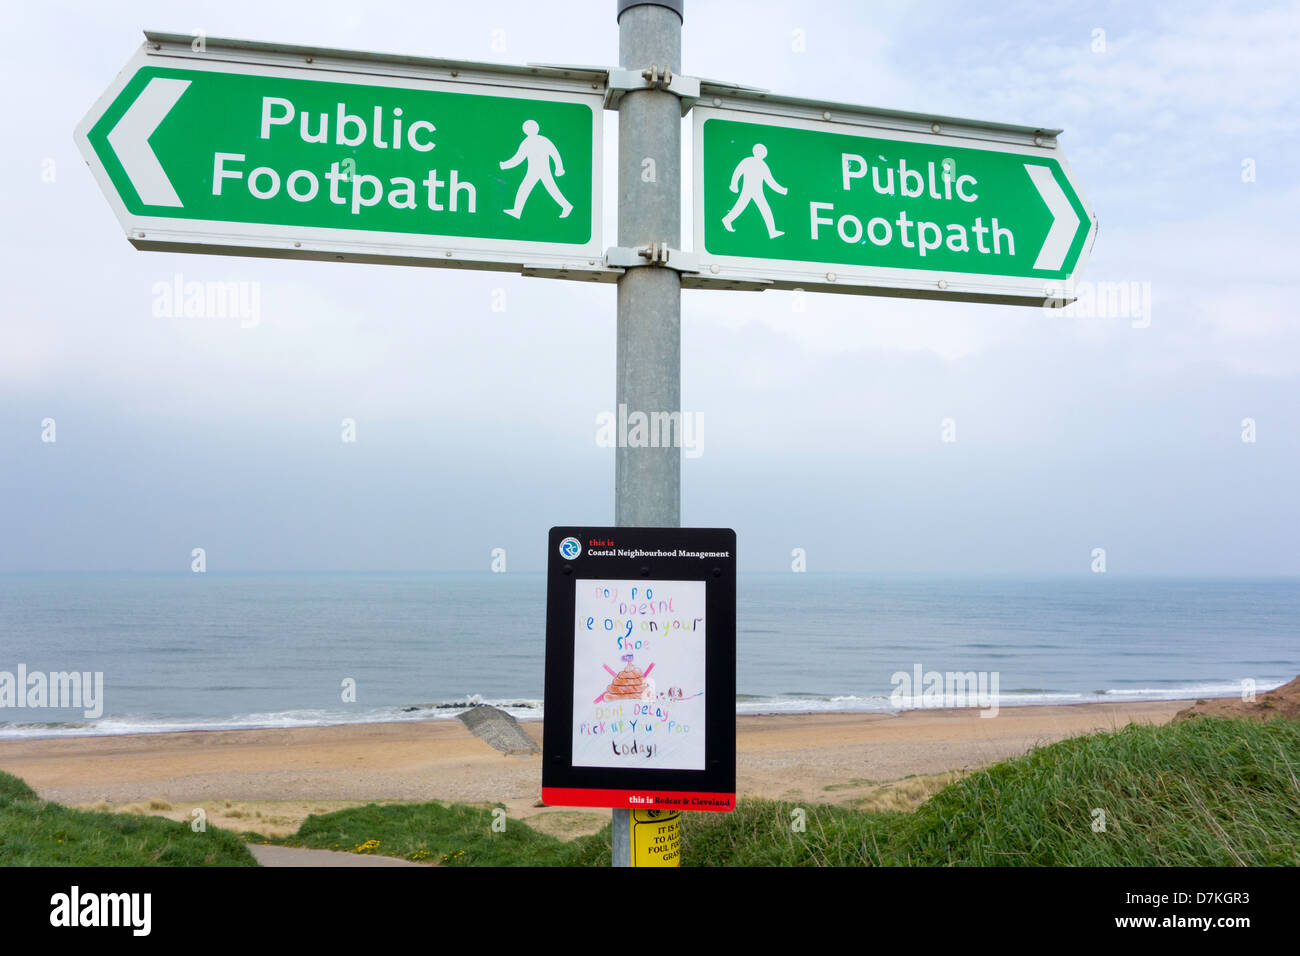 Official Notice Stock Photos & Official Notice Stock Images - Alamy